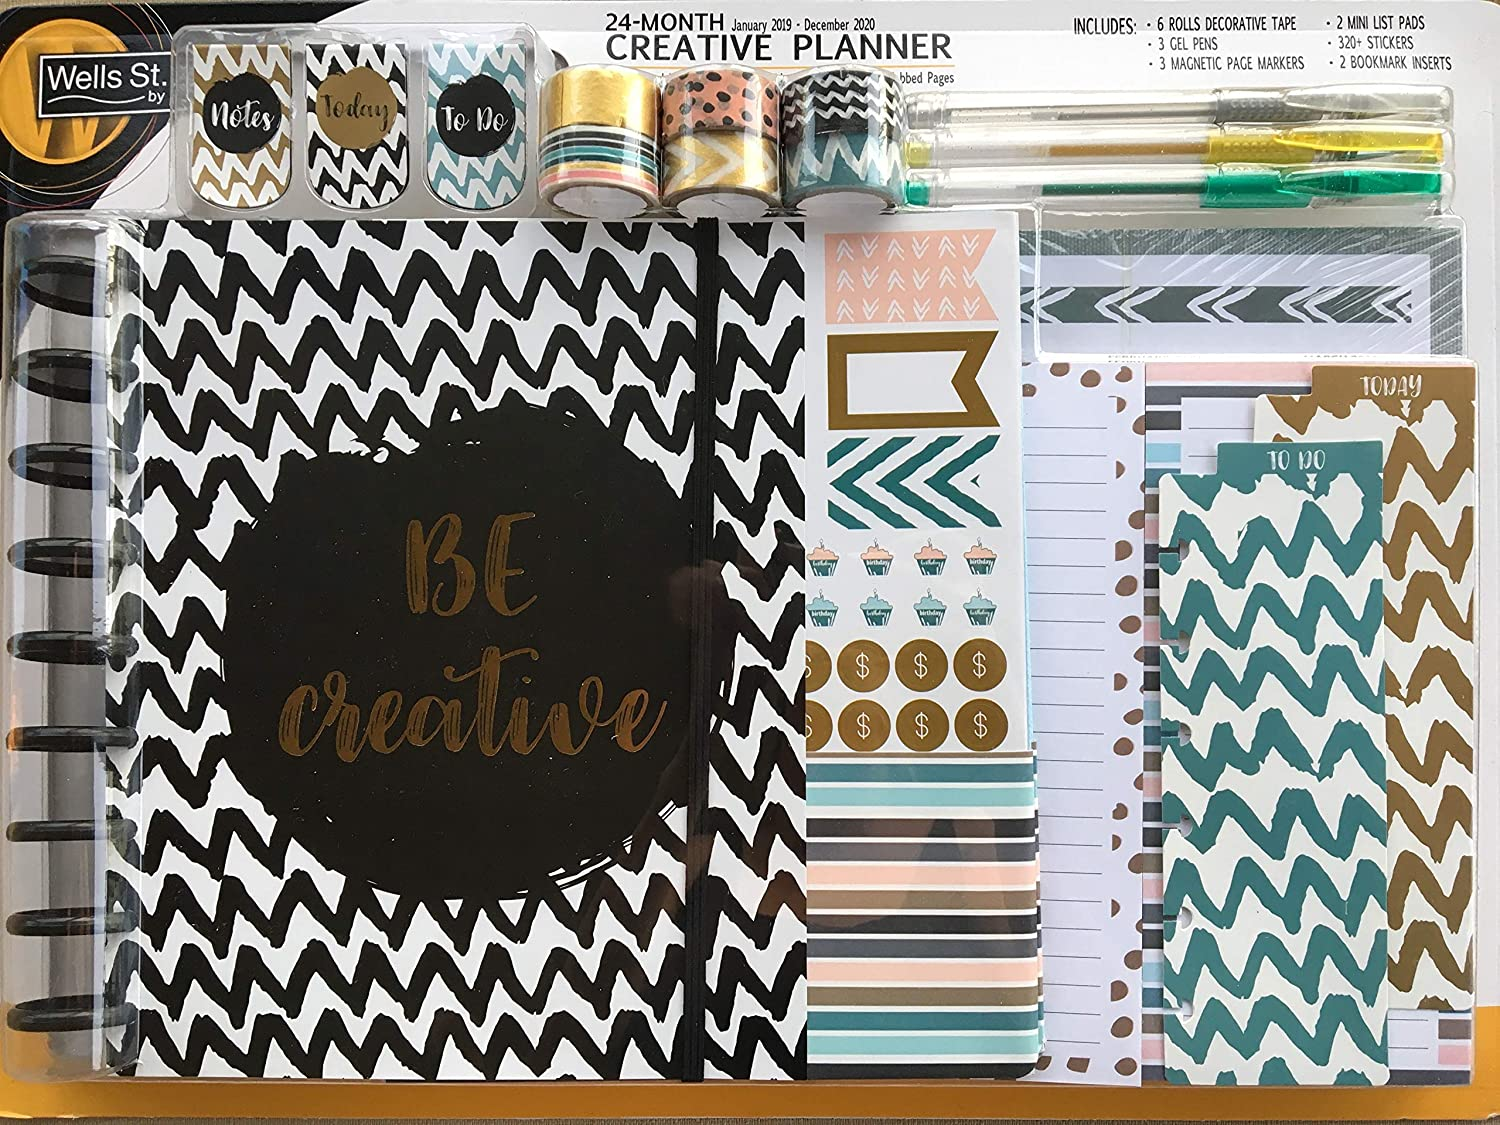 24-Month Creative Planner w/Stickers, List Pads, Inserts and More!